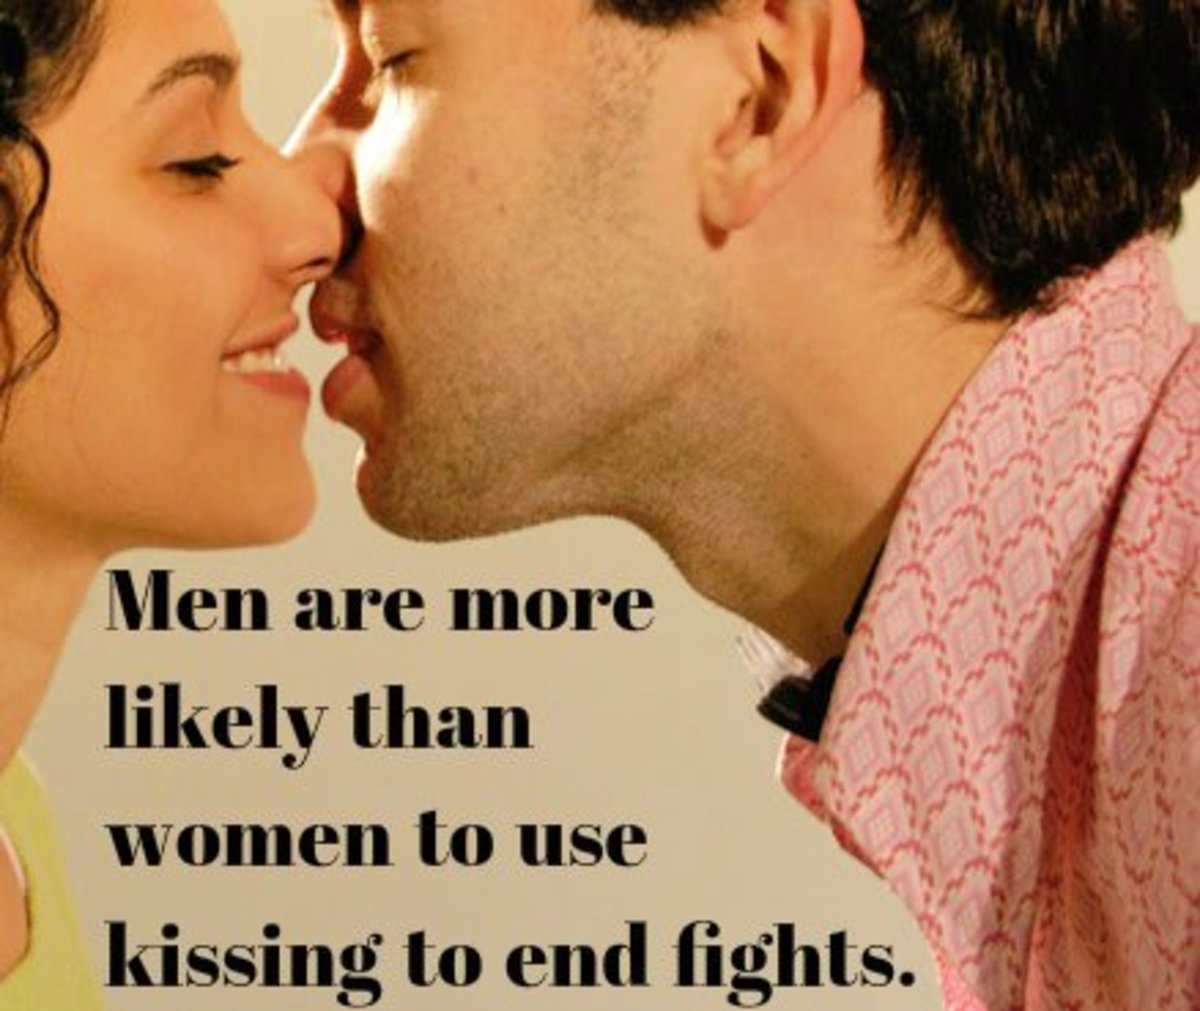 Men are more likely than women to use kissing to end fights.